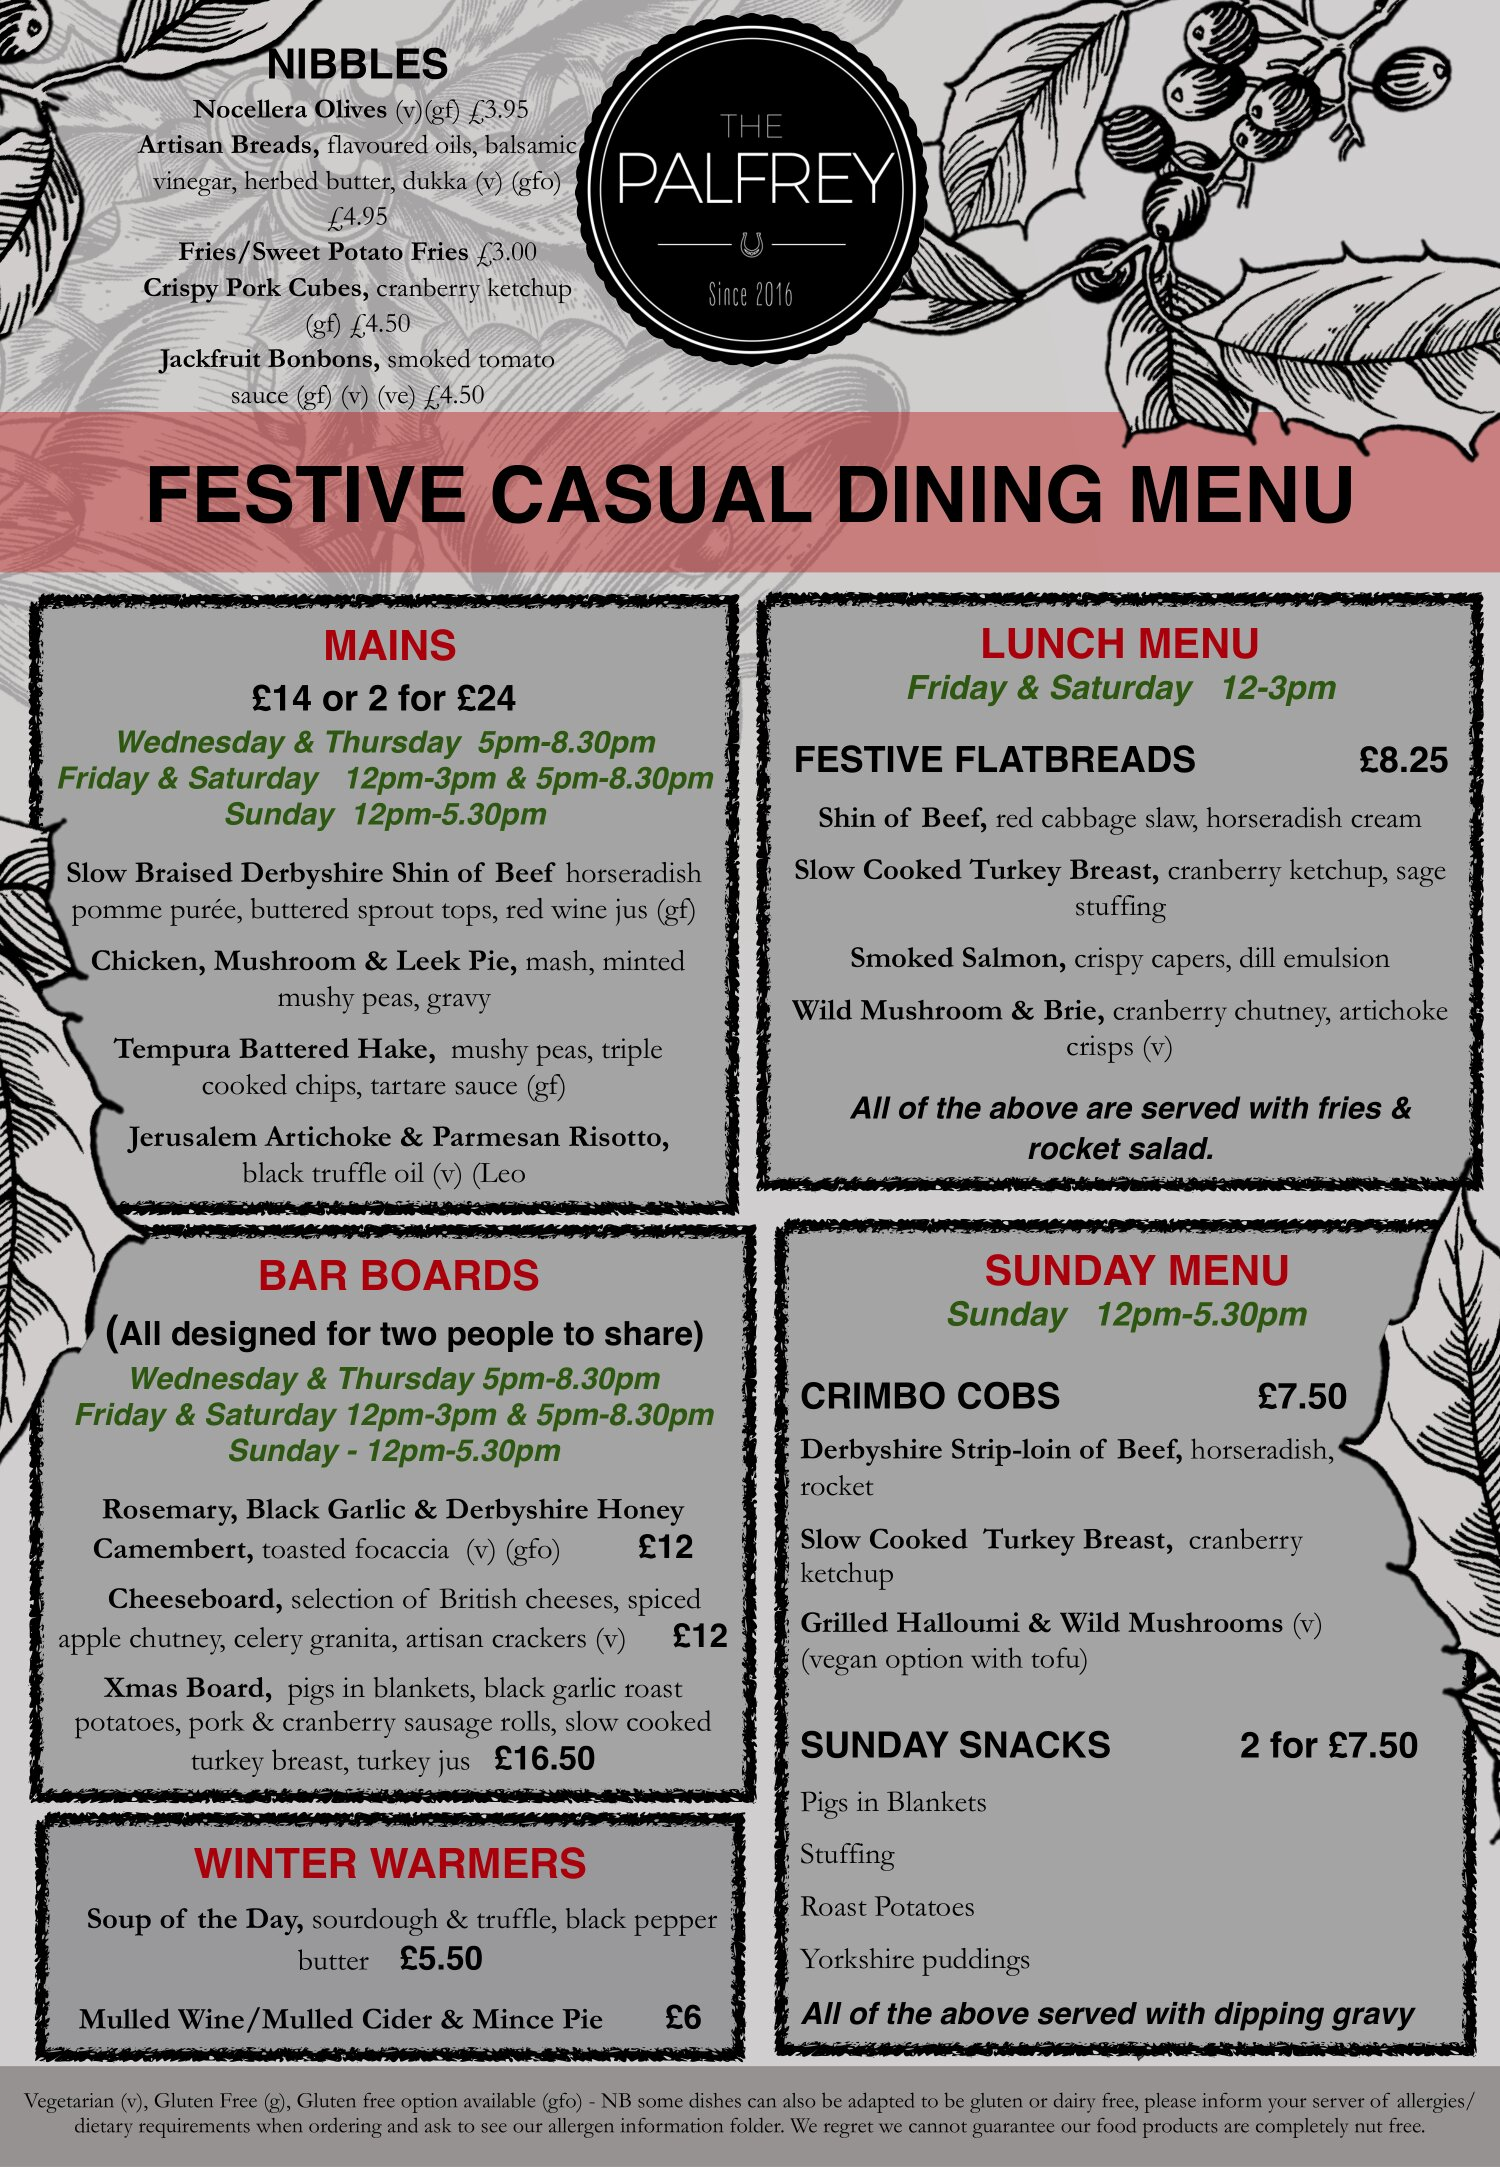 Palfrey Christmas Casual Dining Menu_1-1